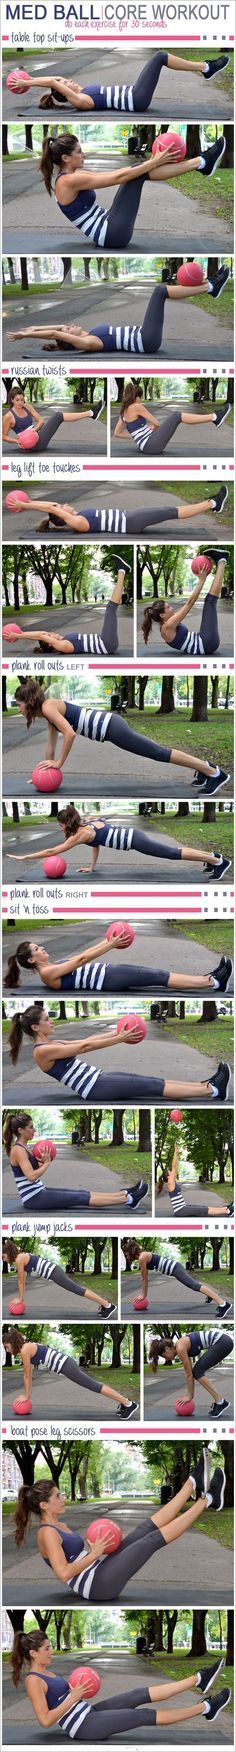 fitness tips  | fitness tip of the day | Fitness tip| Fitness tips for women | health and fitness tips | daily fitness tips | workout routines | workout plans | workout anytime | at home workouts | ho